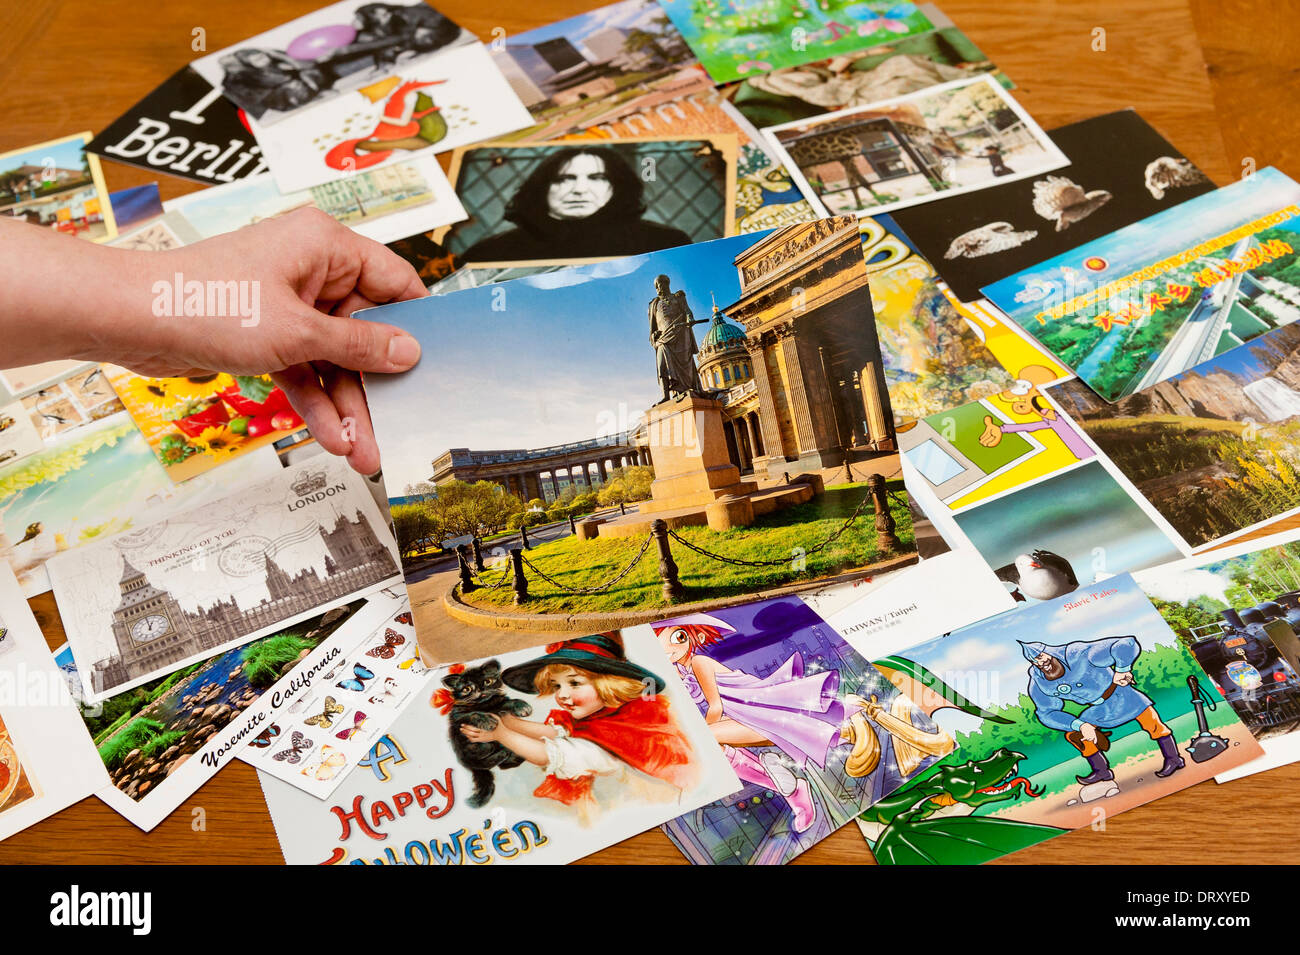 A multitude of postcards lies on a table, with a hand holding one from Russia in the foreground. - Stock Image